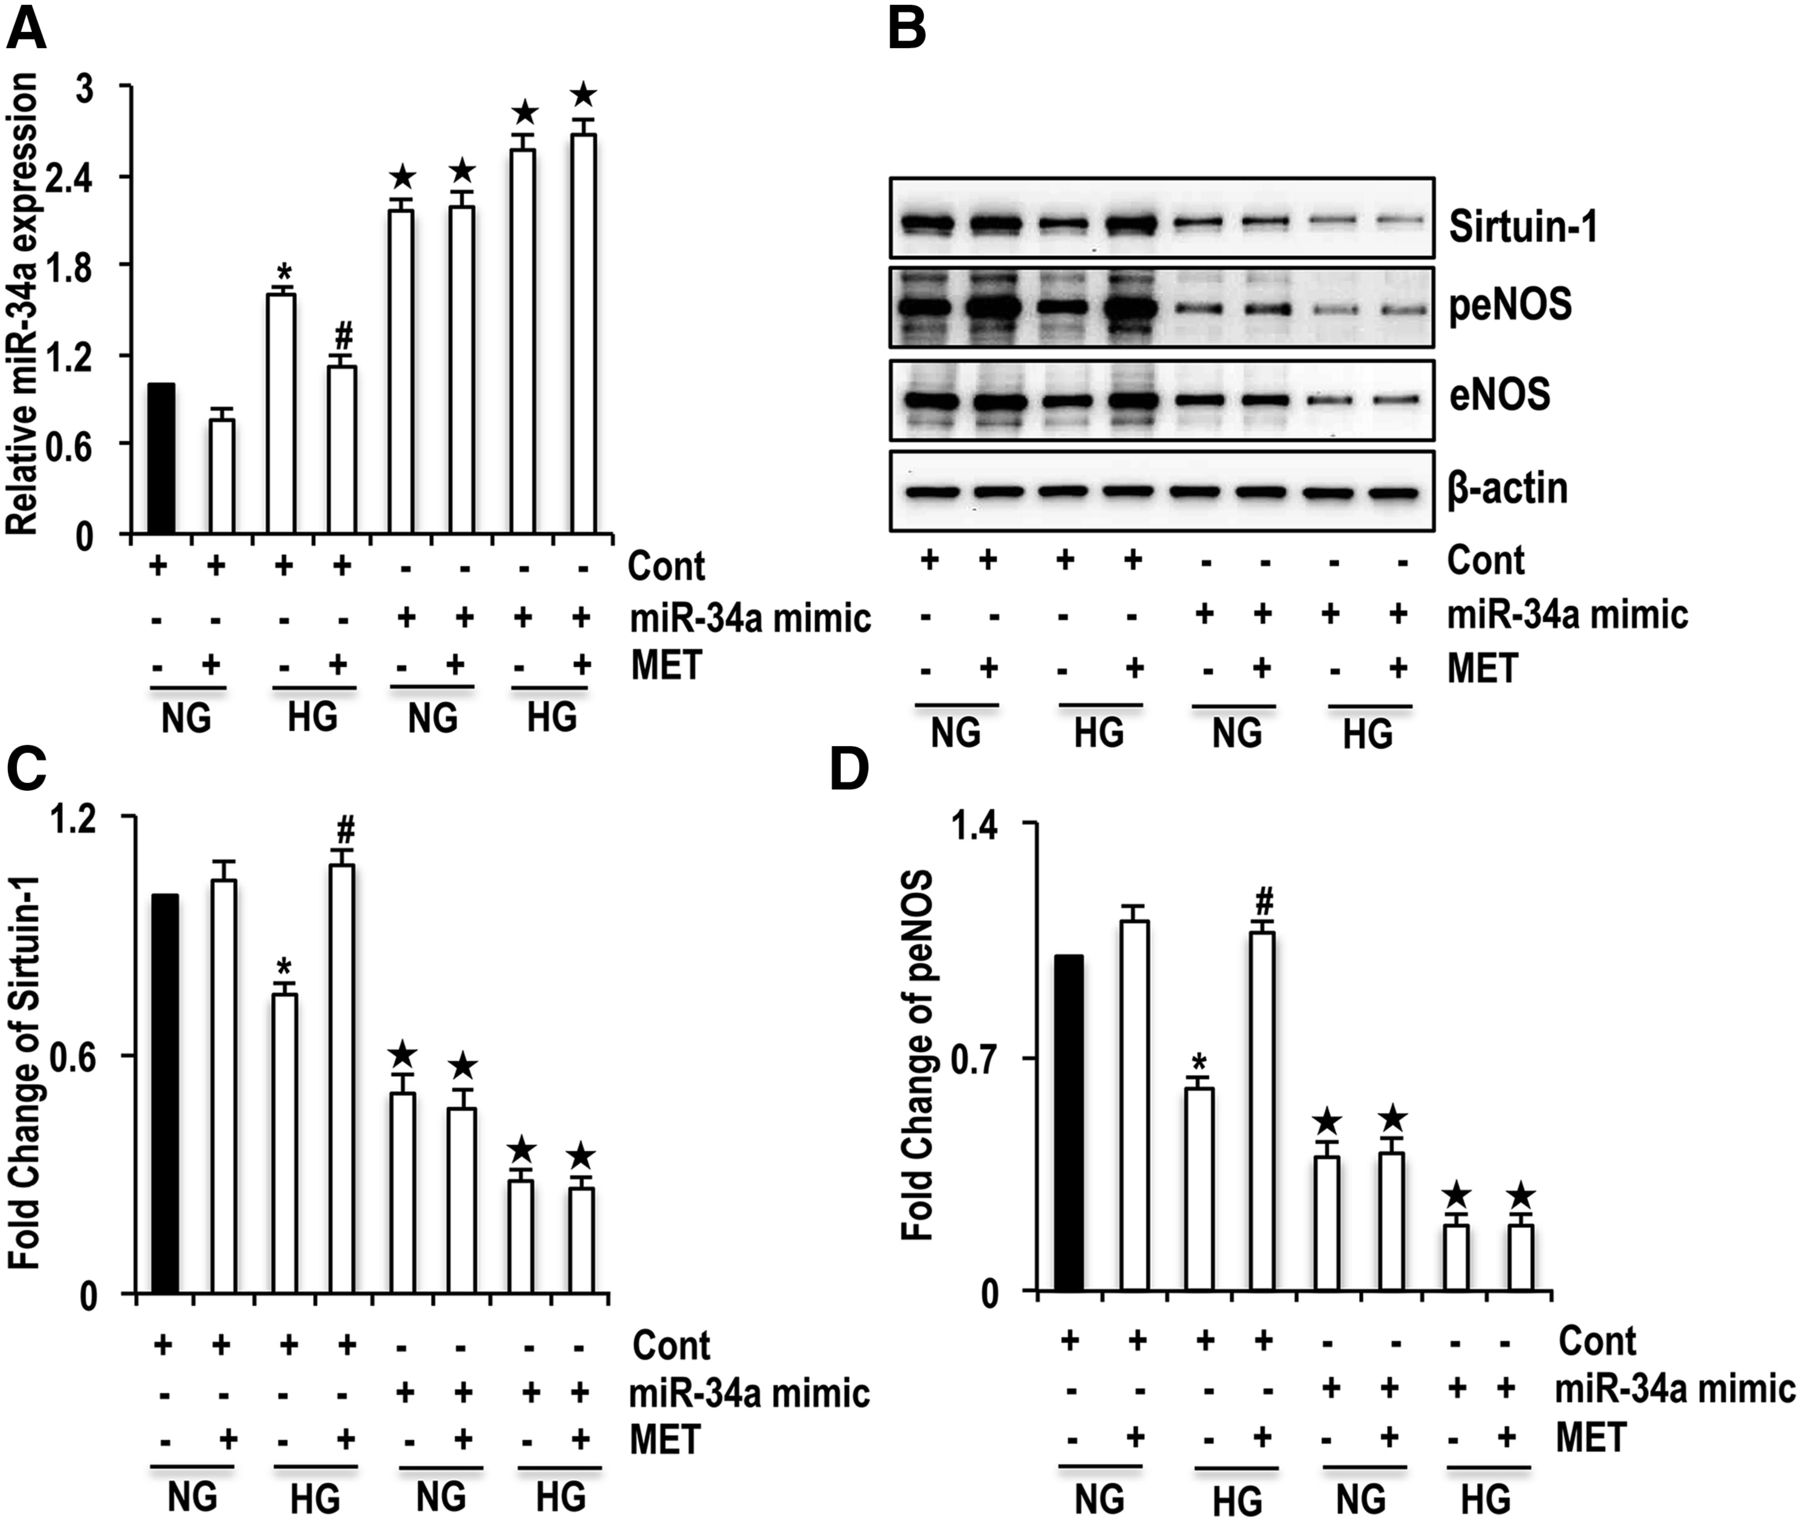 Molecular Interplay between microRNA-34a and Sirtuin1 in